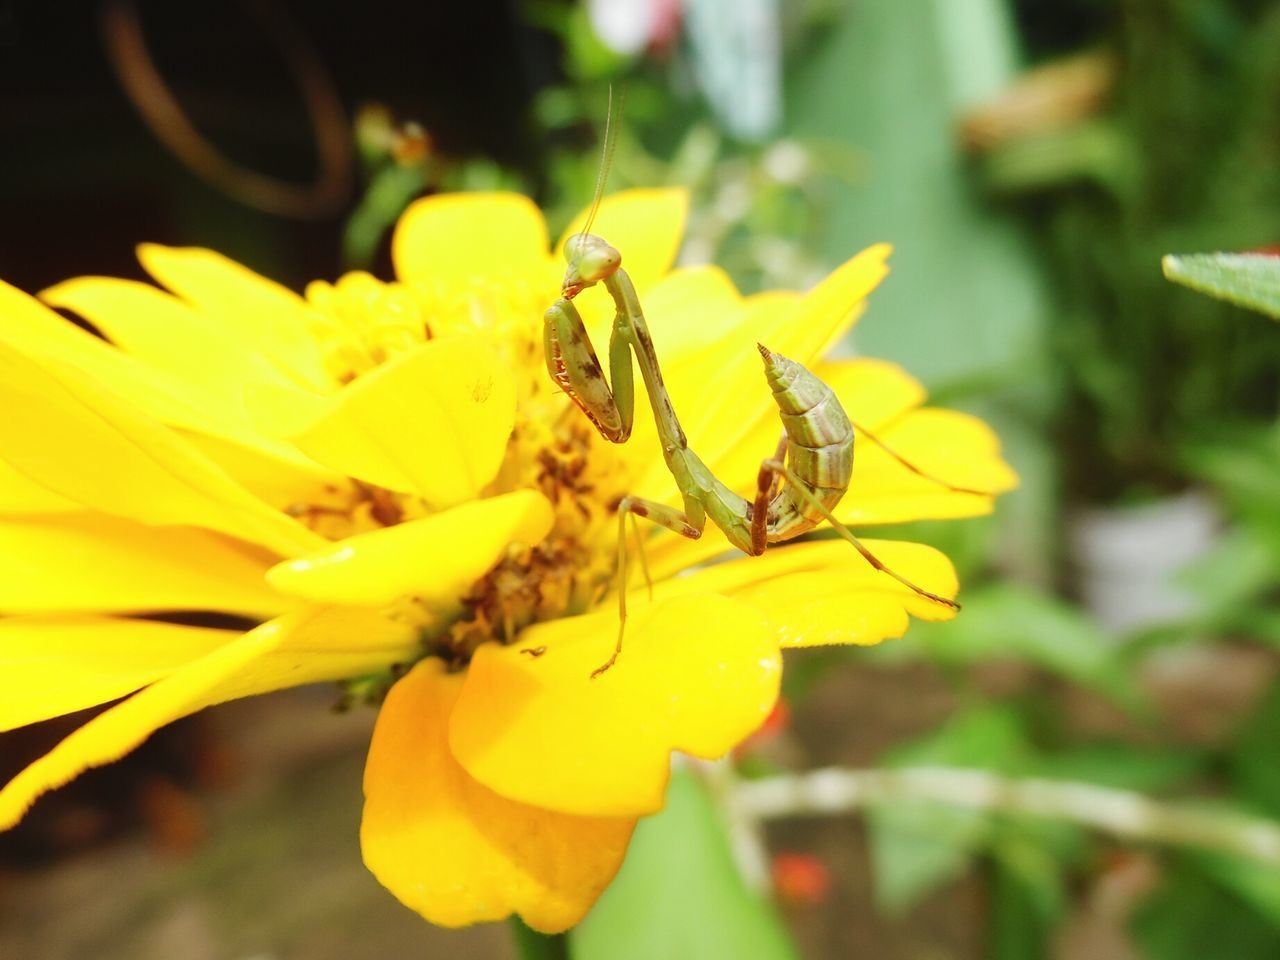 yellow, insect, flower, animals in the wild, animal themes, one animal, petal, nature, growth, animal wildlife, day, close-up, plant, outdoors, fragility, focus on foreground, no people, beauty in nature, flower head, freshness, pollination, bee